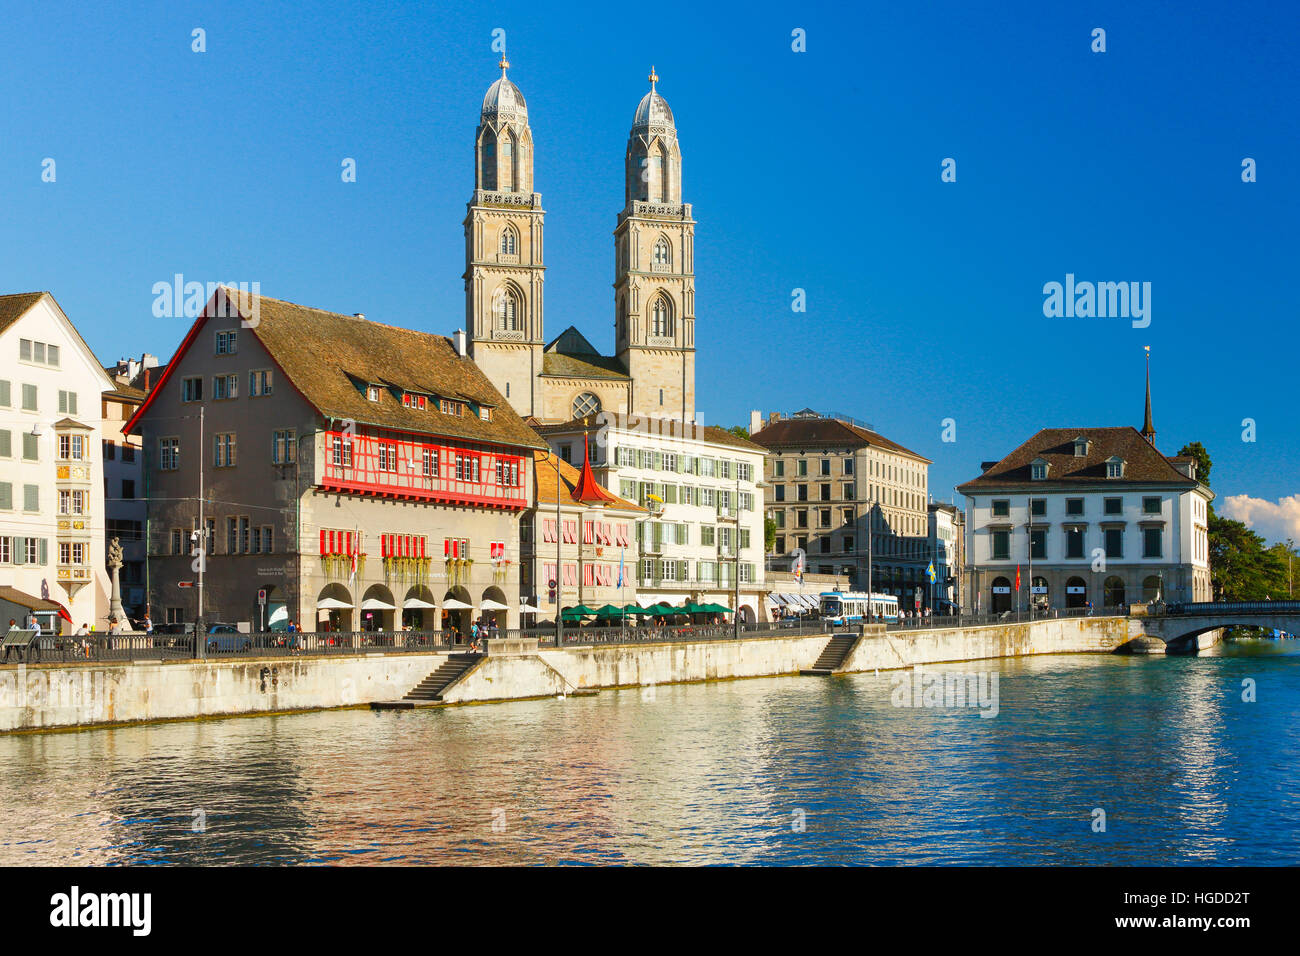 Grossmünster church in Zurich city, Switzerland - Stock Image